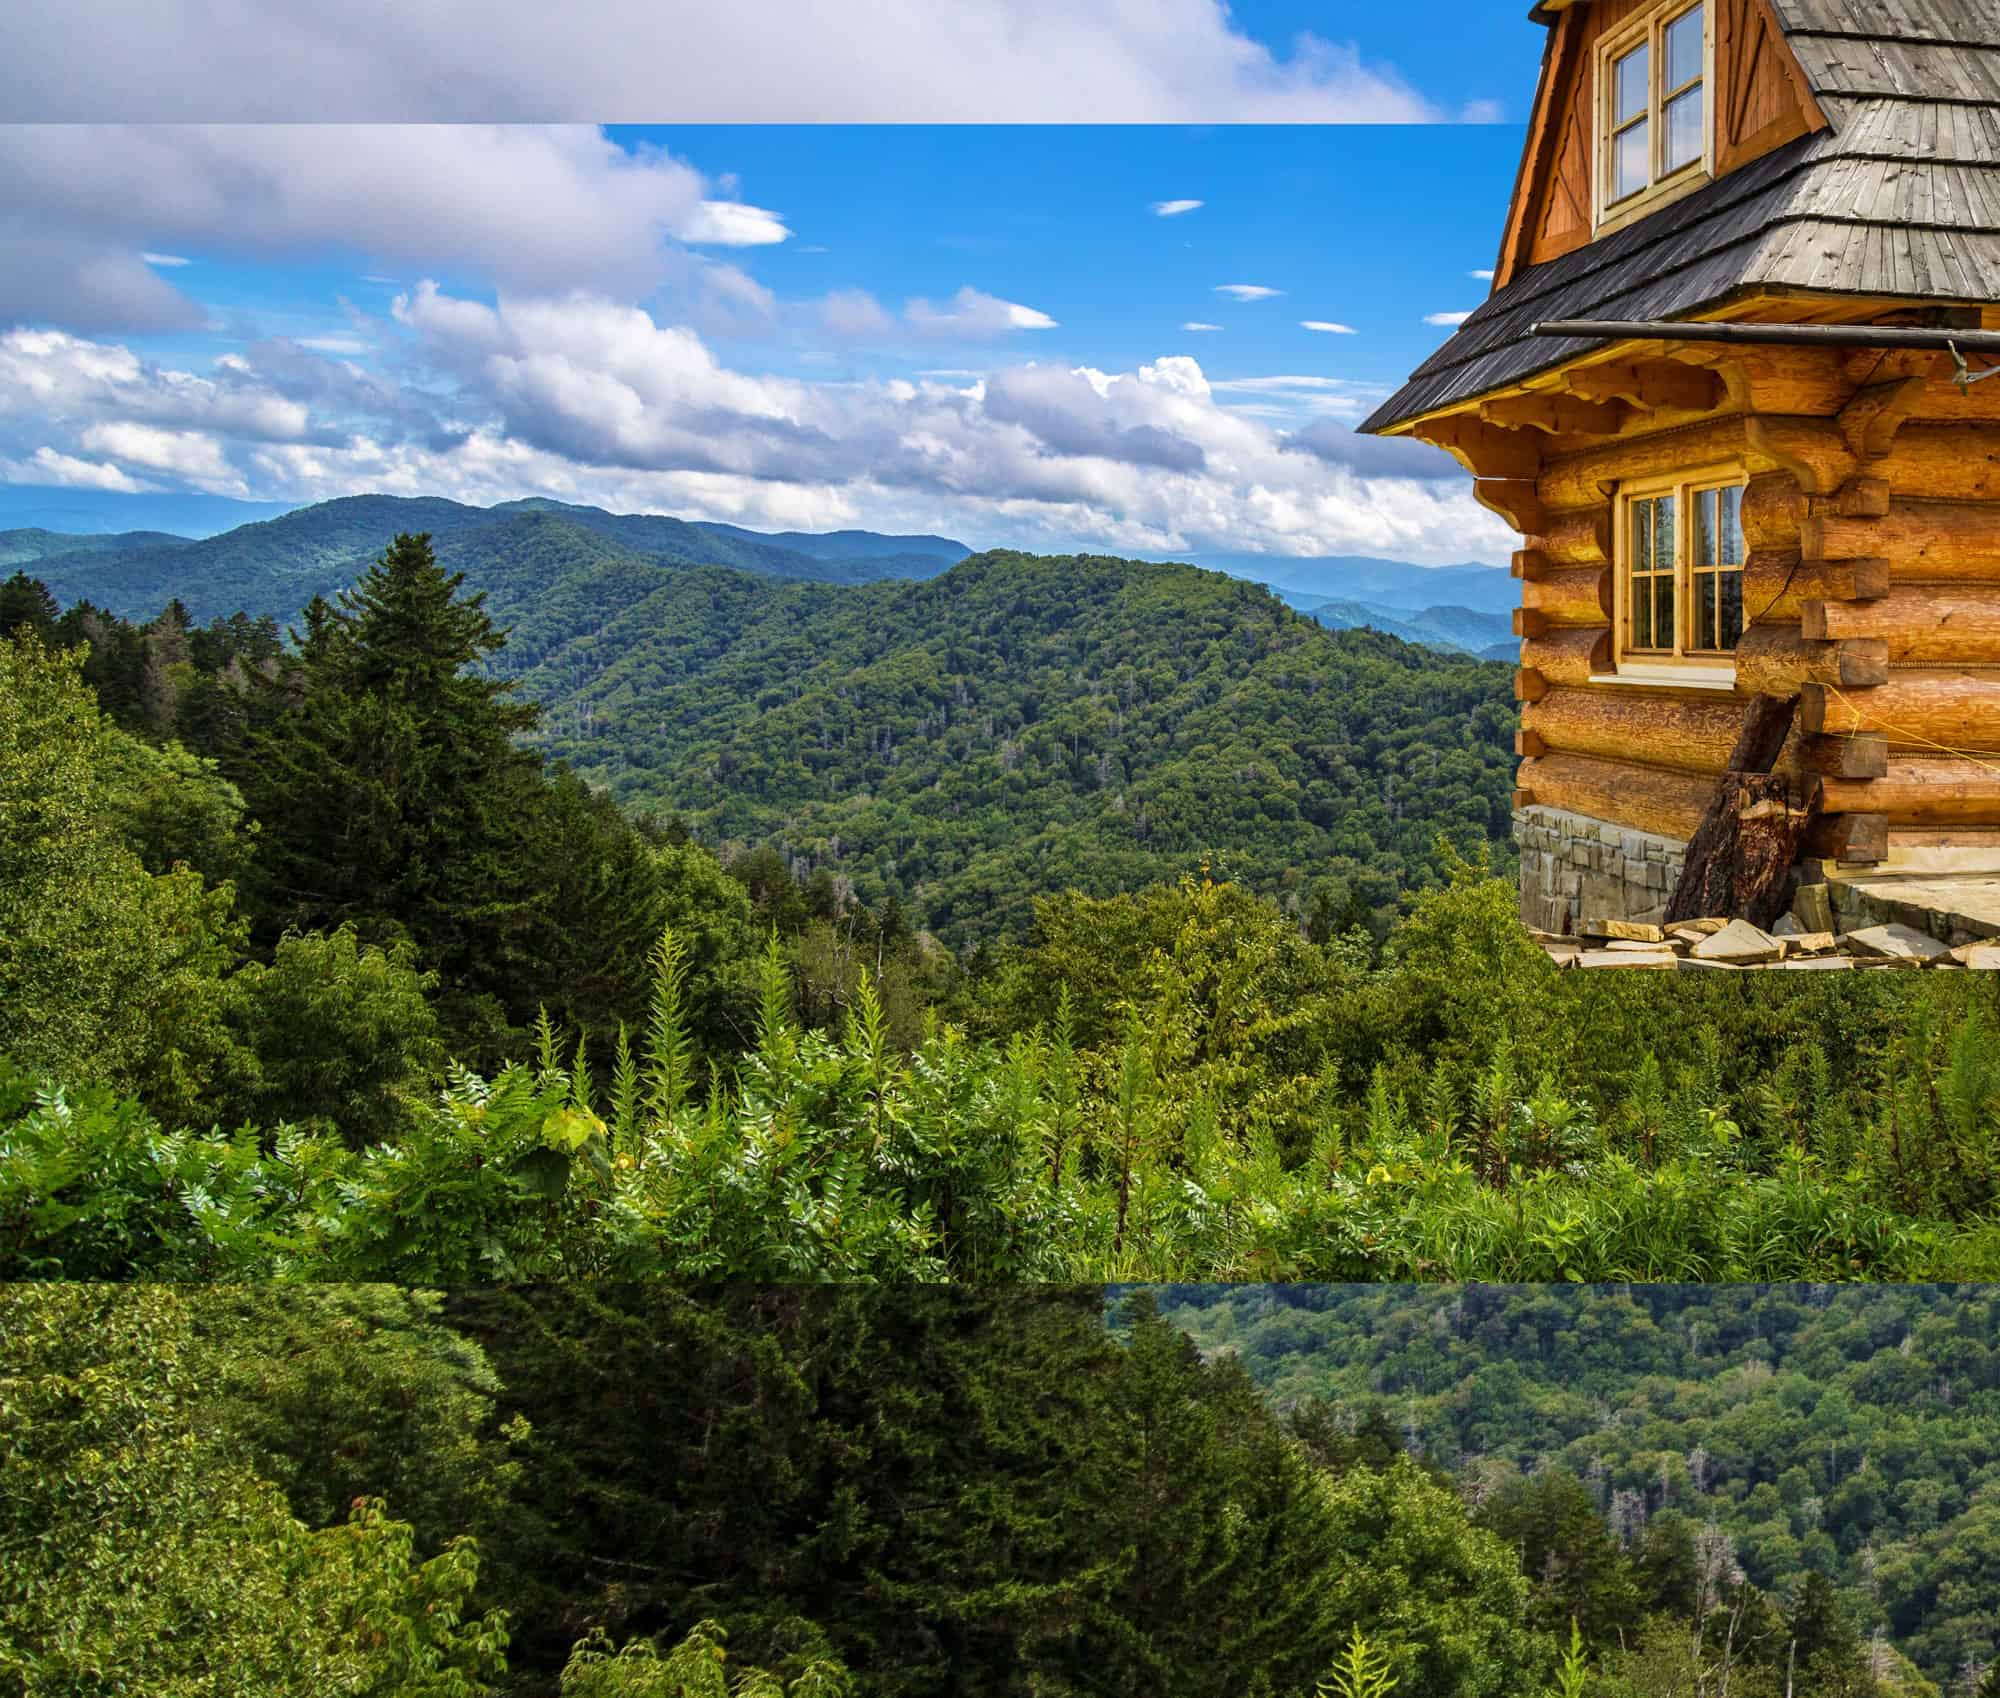 Smoky mountain cabin rentals in gatlinburg pigeon forge for Smoky mountain nc cabin rentals